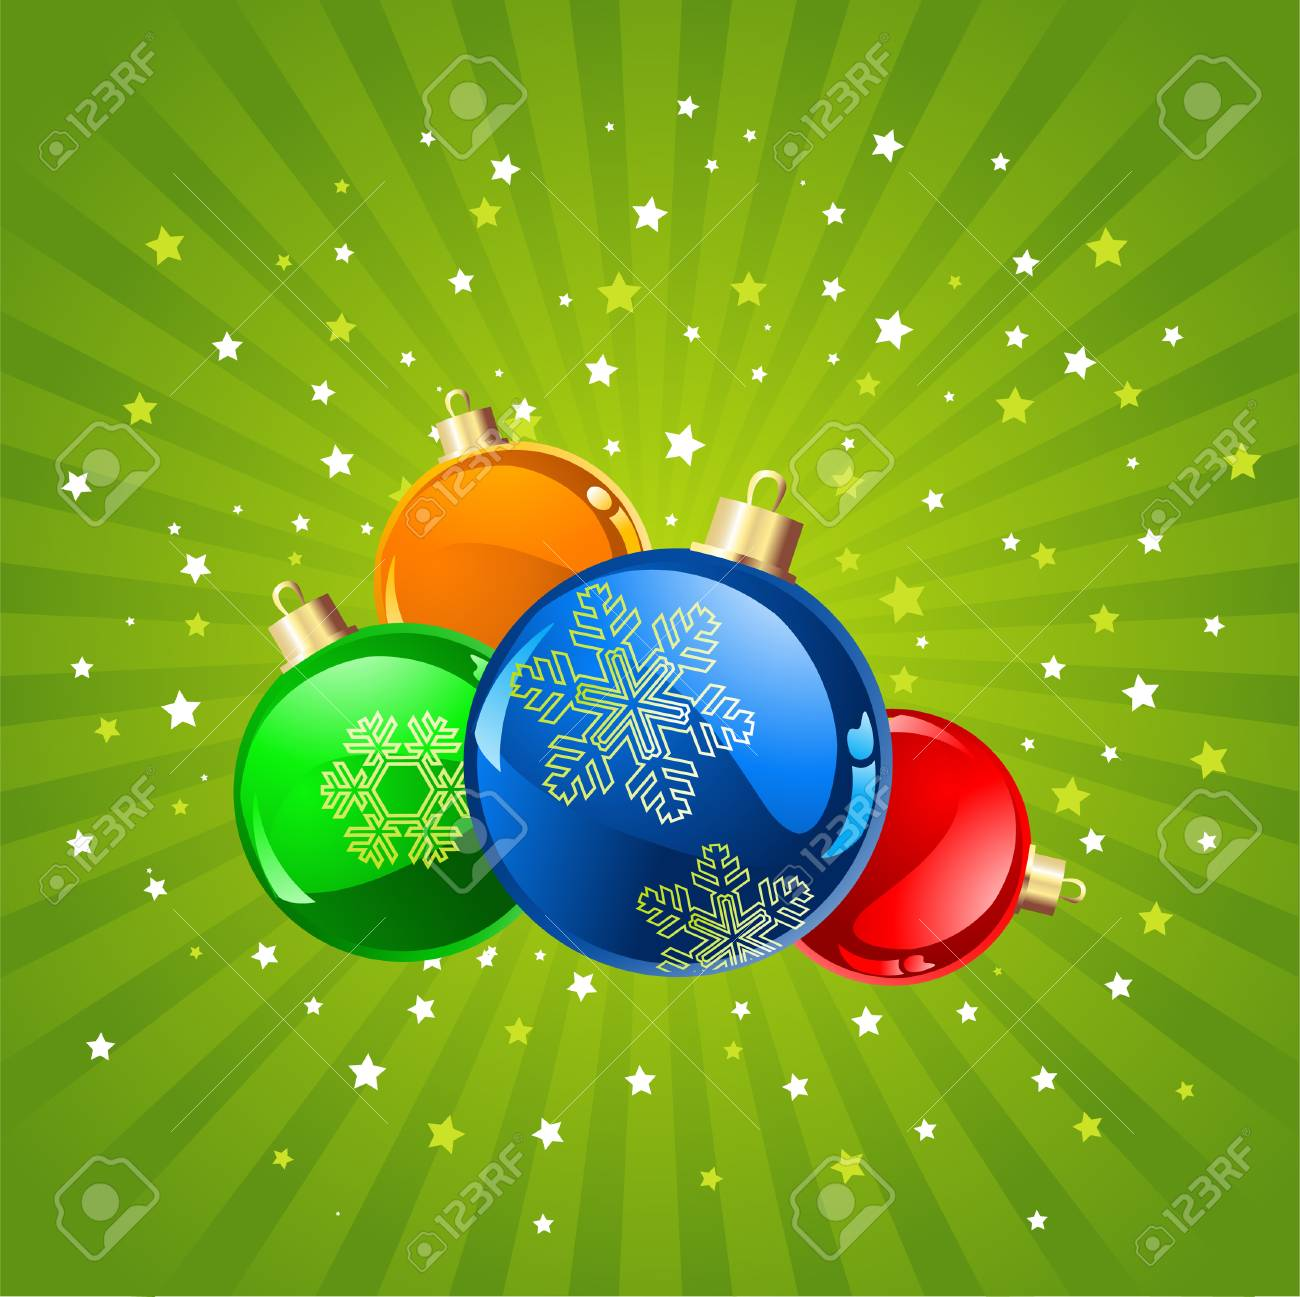 Abstract Christmas background with baubles, element for design,illustration. Stock Vector - 5702002